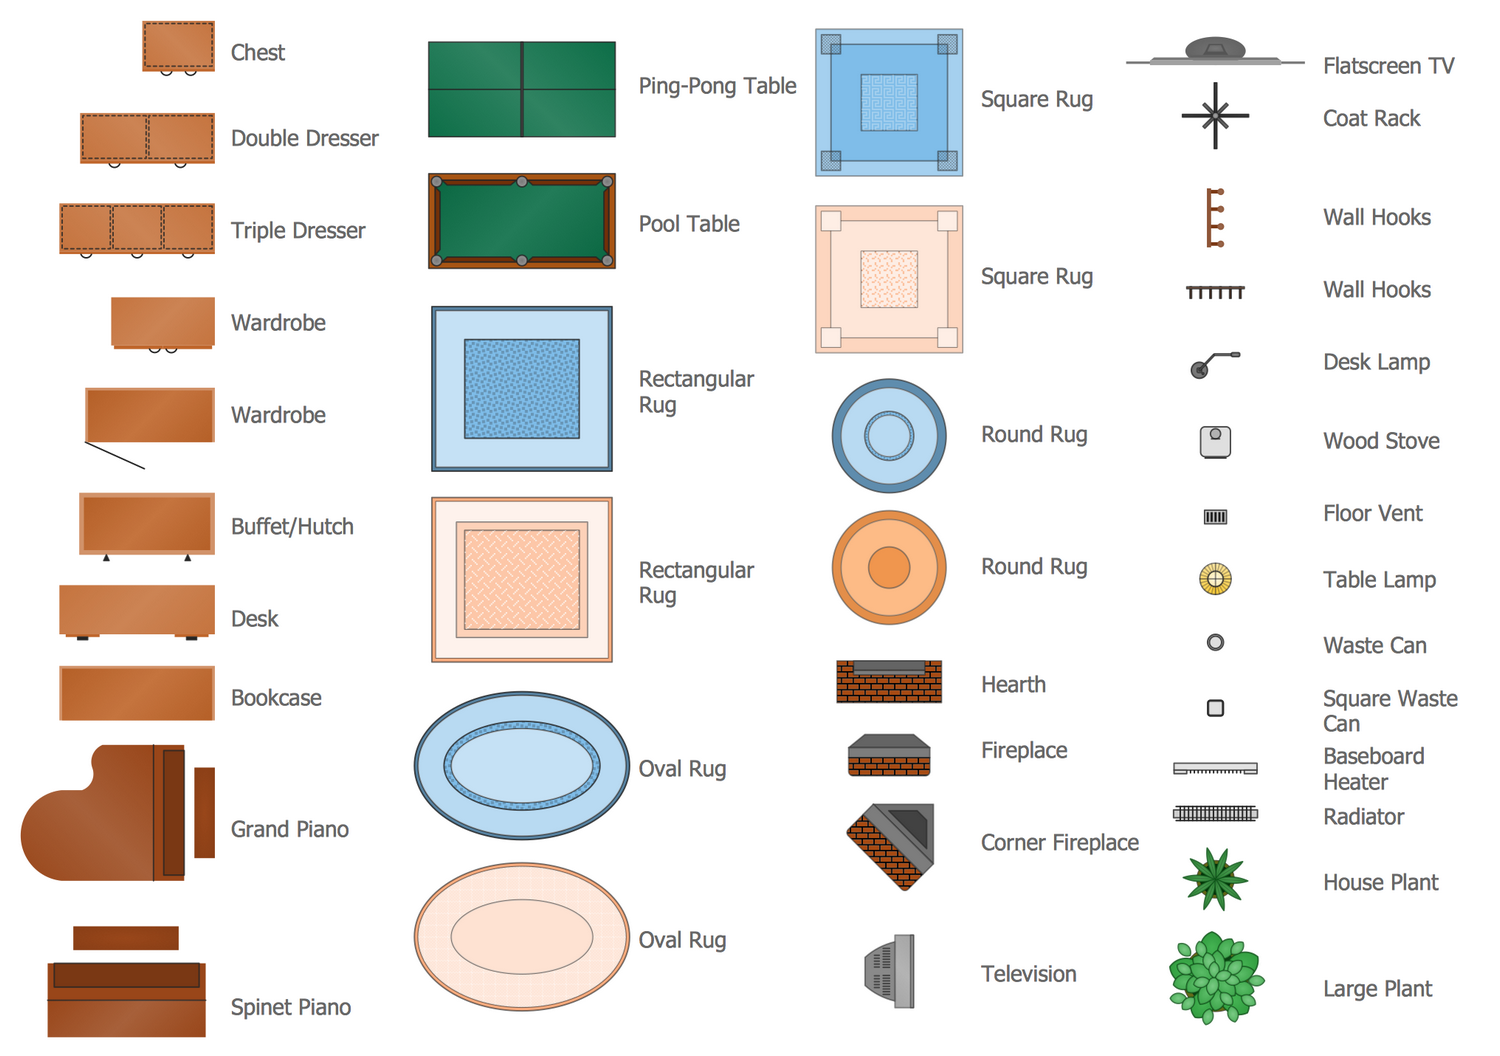 floor plan furniture layout. Design Elements \u2014 Furniture Floor Plan Layout F